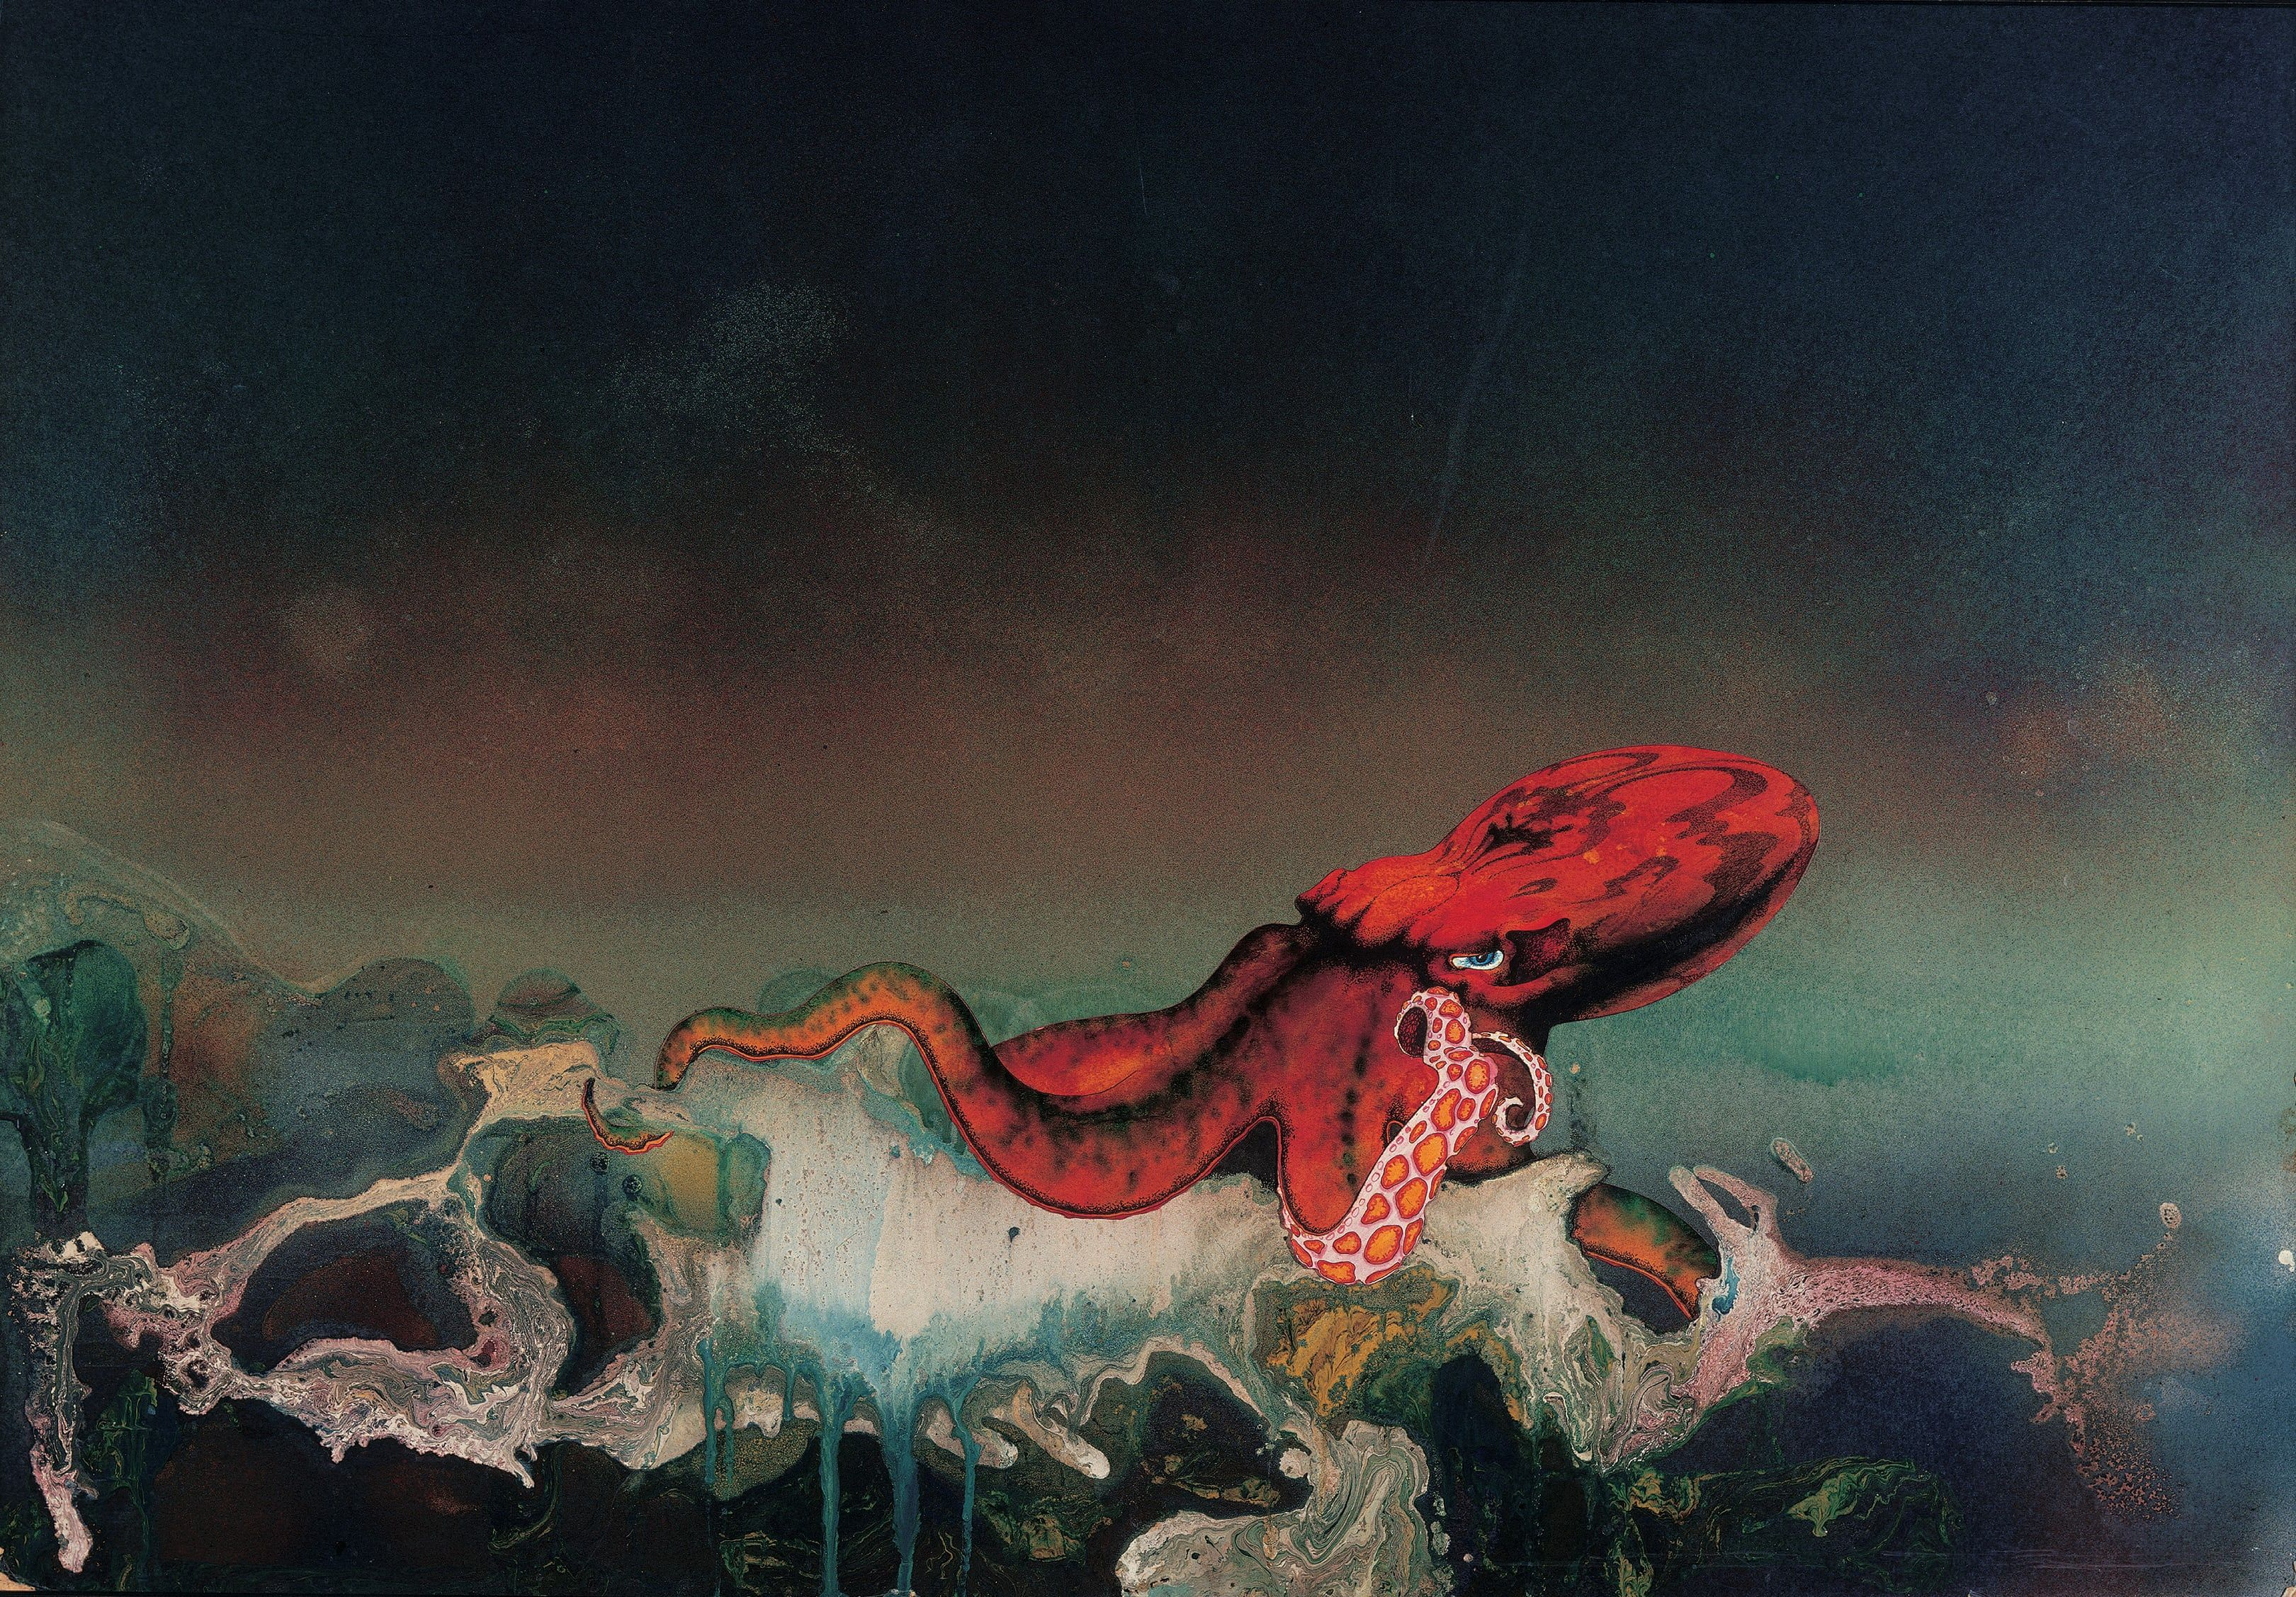 The Weird Worlds Of Roger Dean Prog Rock S Artist In Residence Ilustraciones Arte Fantastico Artistas